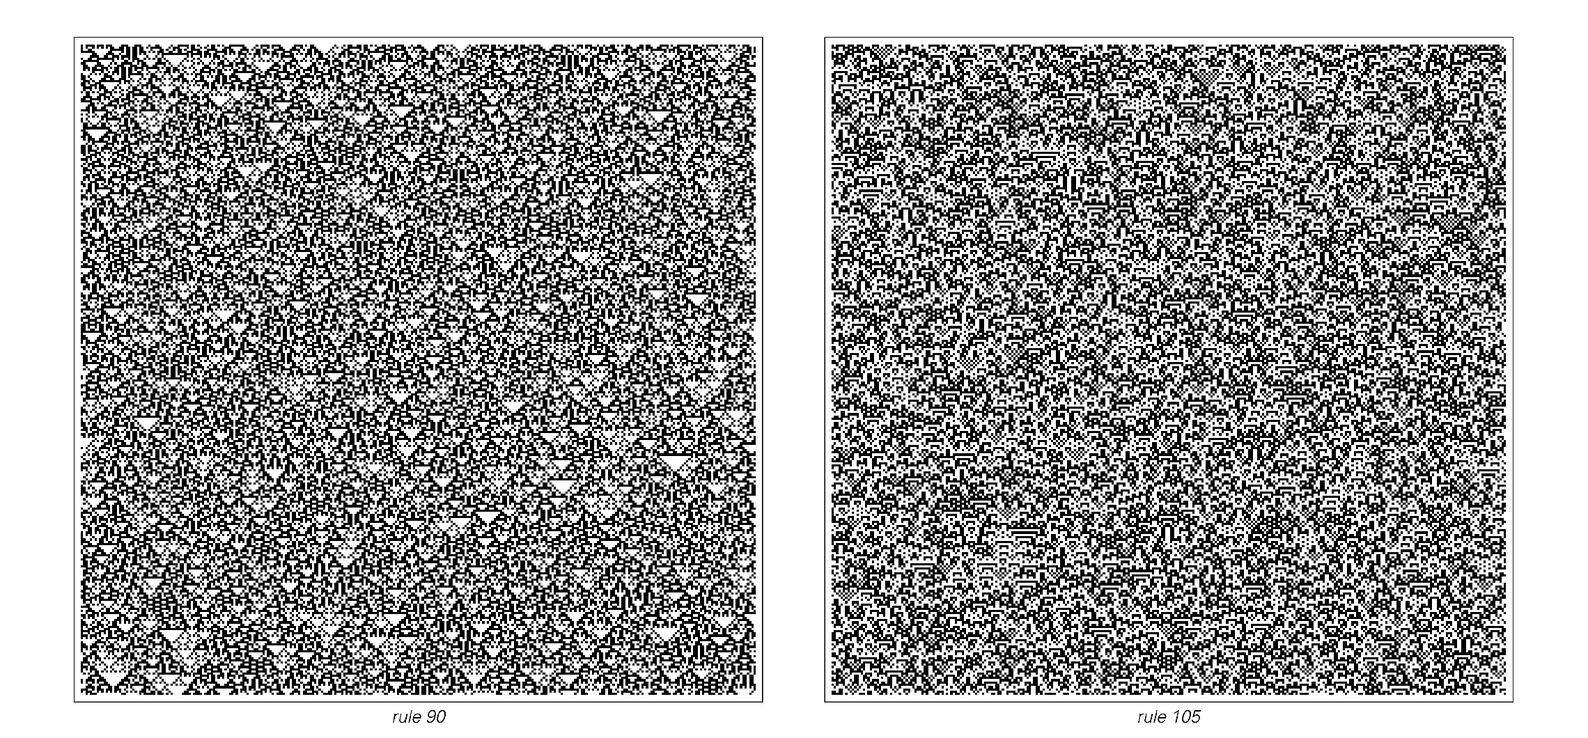 Cellular automata with small structures and random behavior